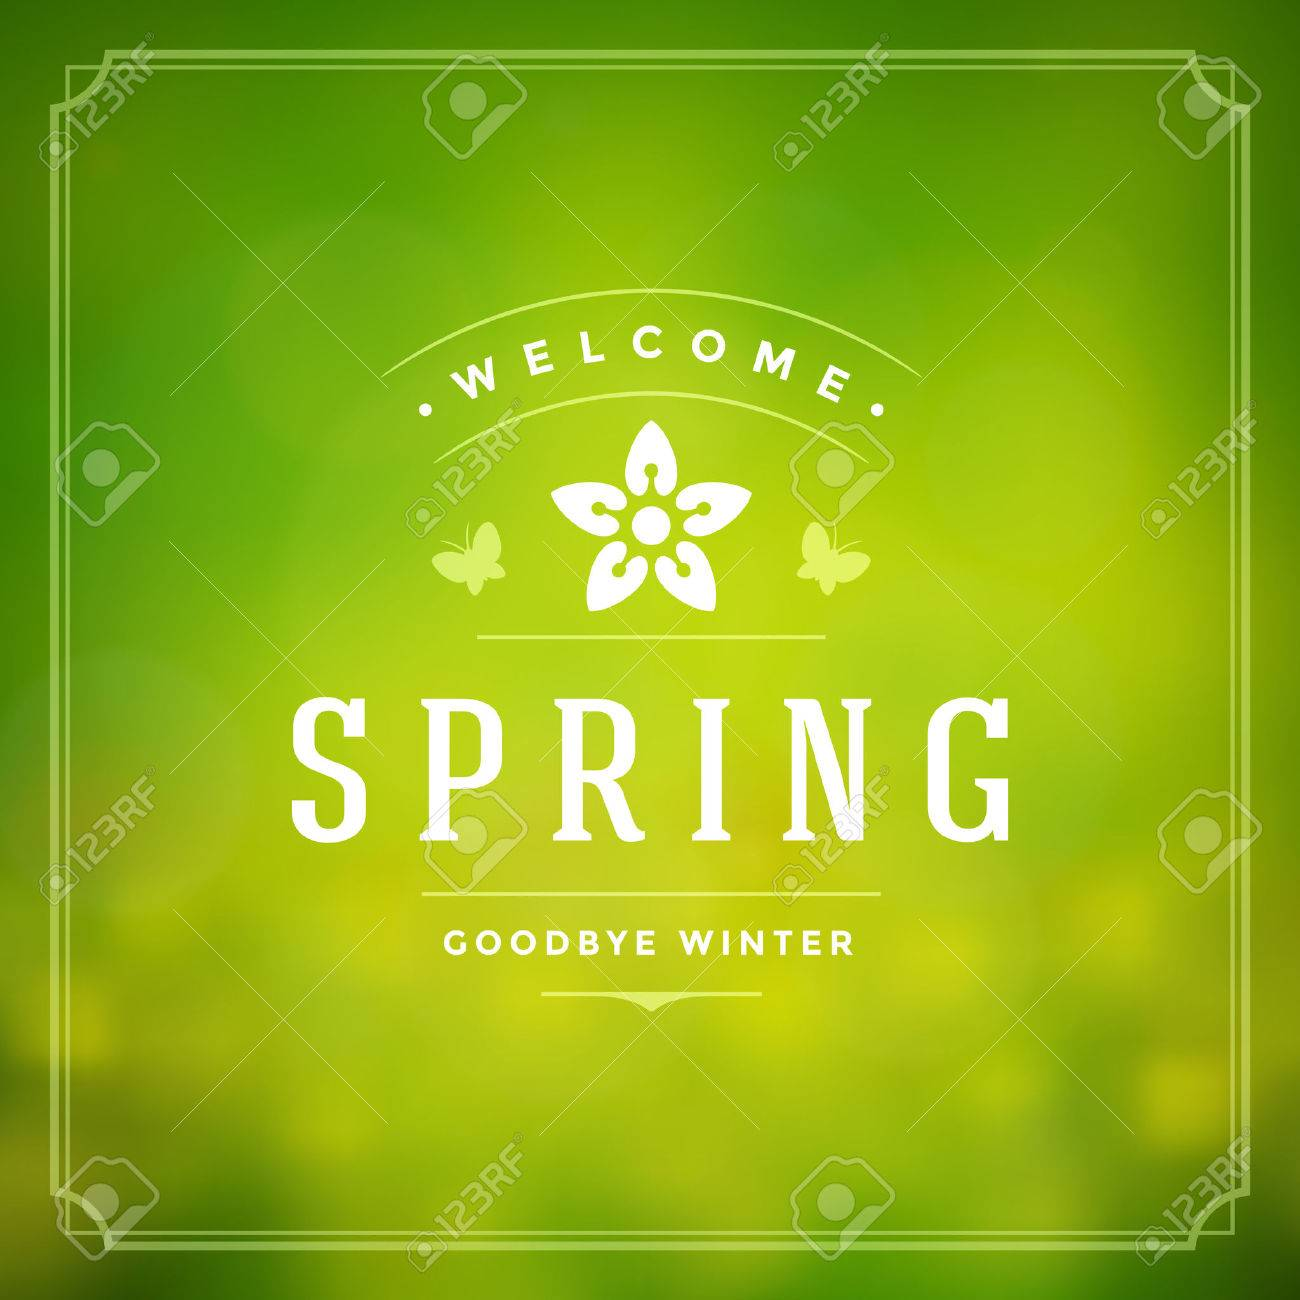 Spring Vector Typographic Poster or Greeting Card Design. Beautiful Blurred Lights with Bokeh and Flower Field. Spring Background, Spring Label, Spring Flowers, Spring Sale, Spring Advertising. - 52491503